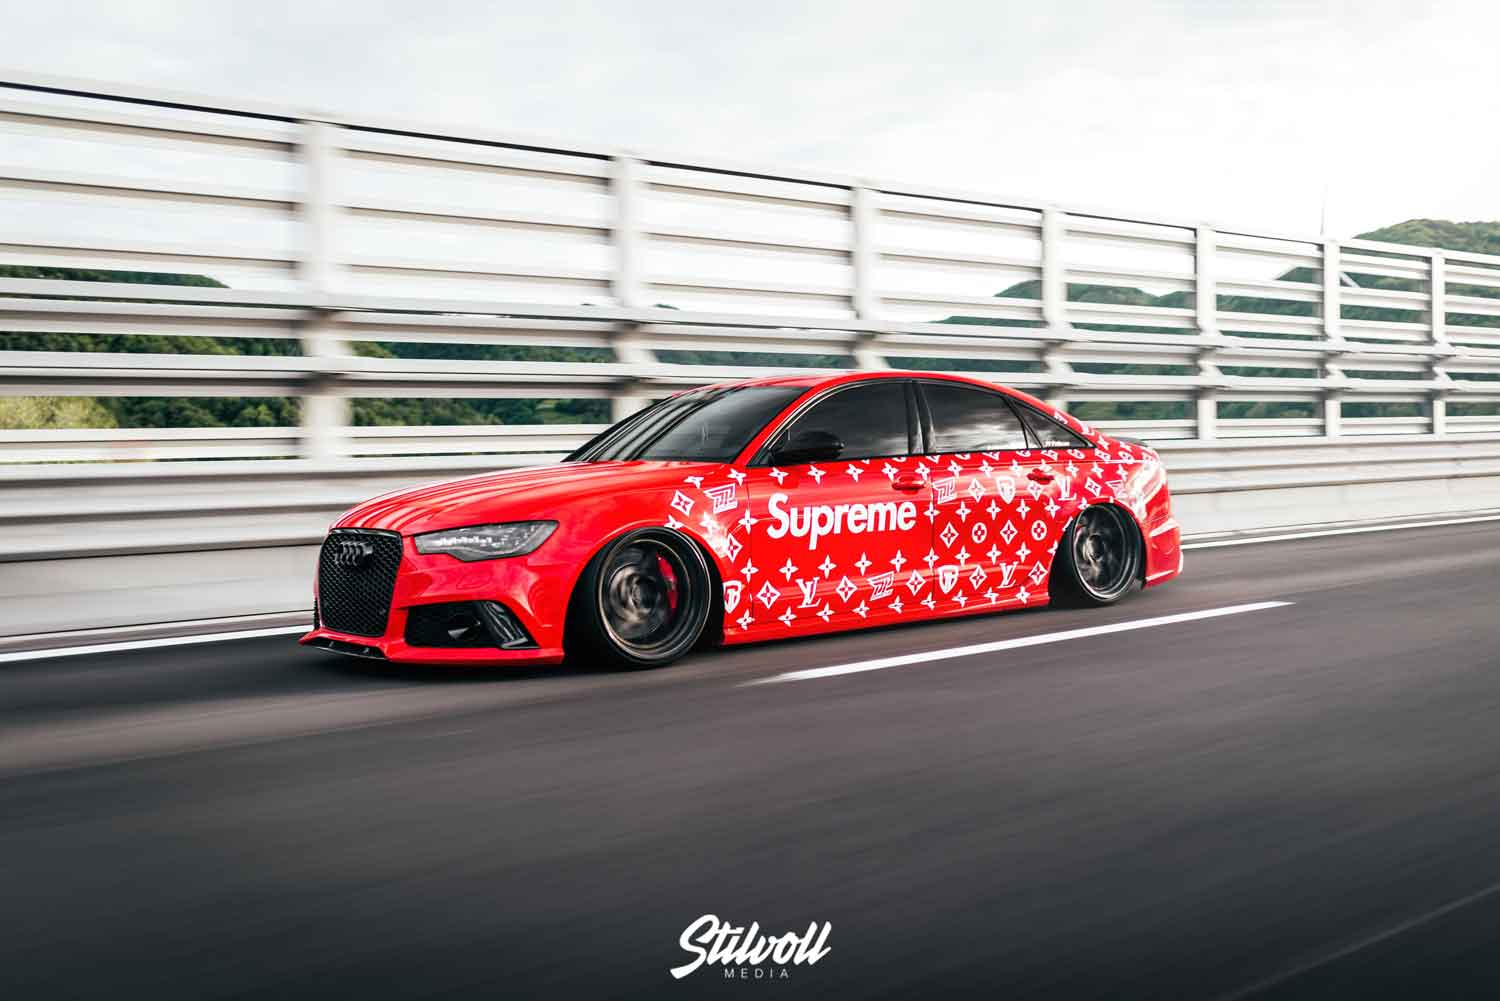 Audi RS6 Sedan / Limo GBwrapping pp-parts supreme louis Vuitton